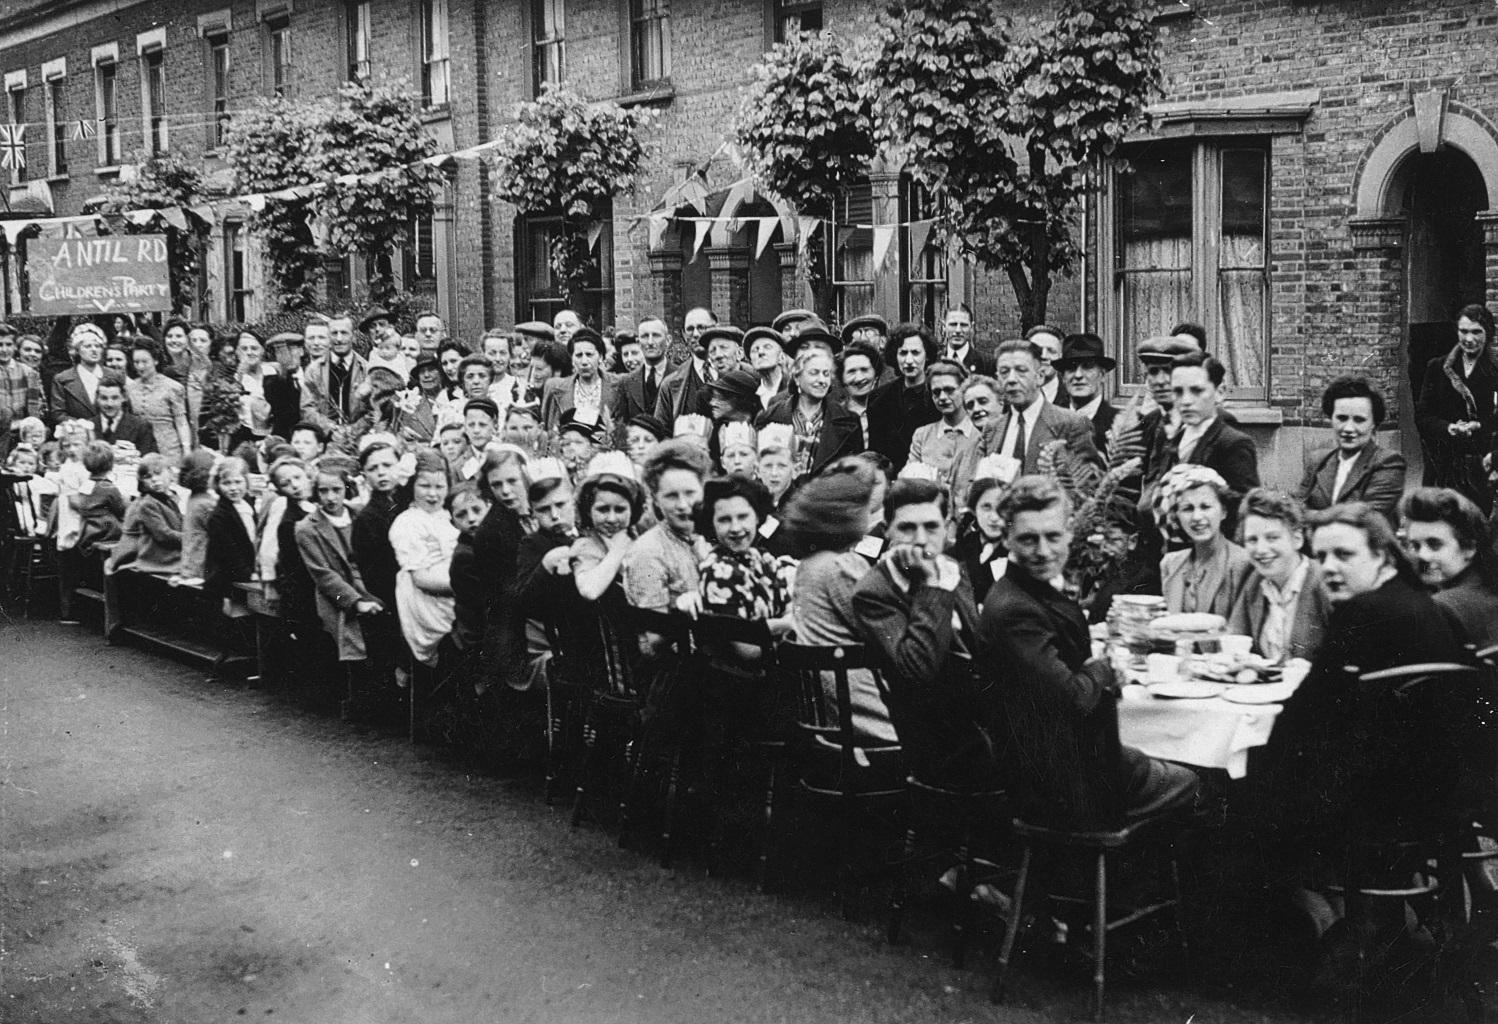 VE Day street party at Antill Road in Tottenham 1945